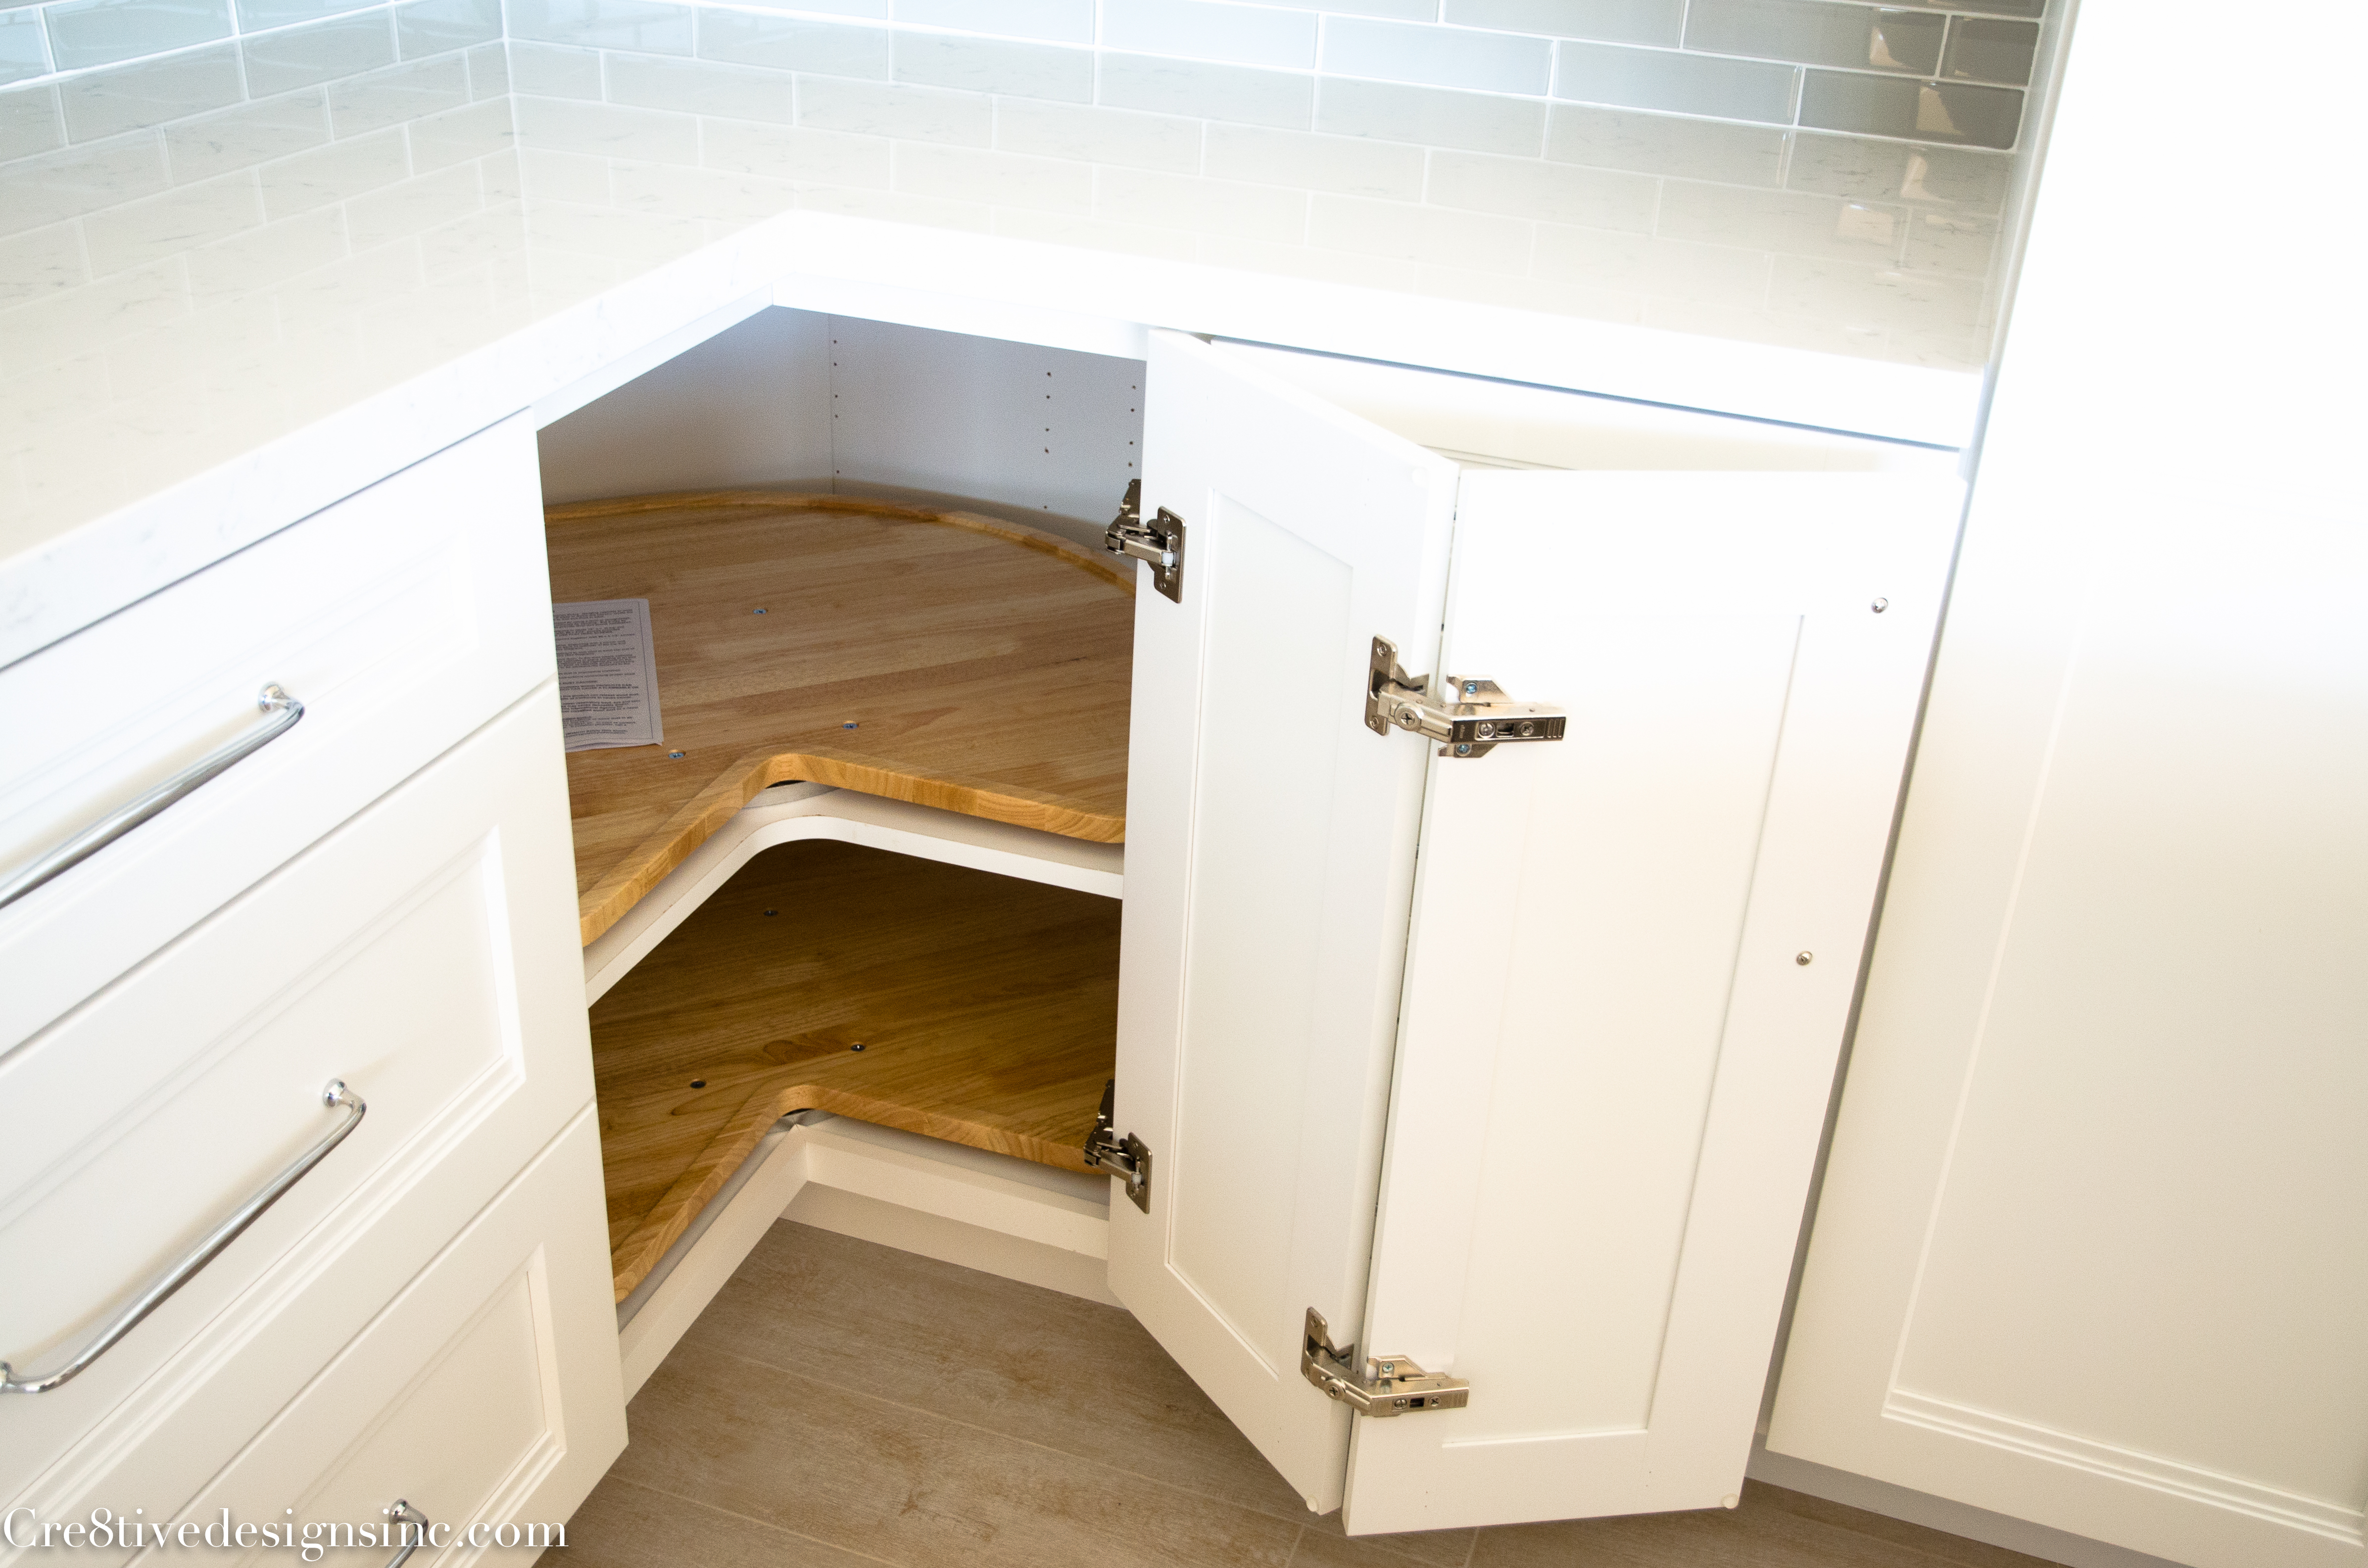 Diamond Bathroom Cabinets Columbia Styles Deebonk